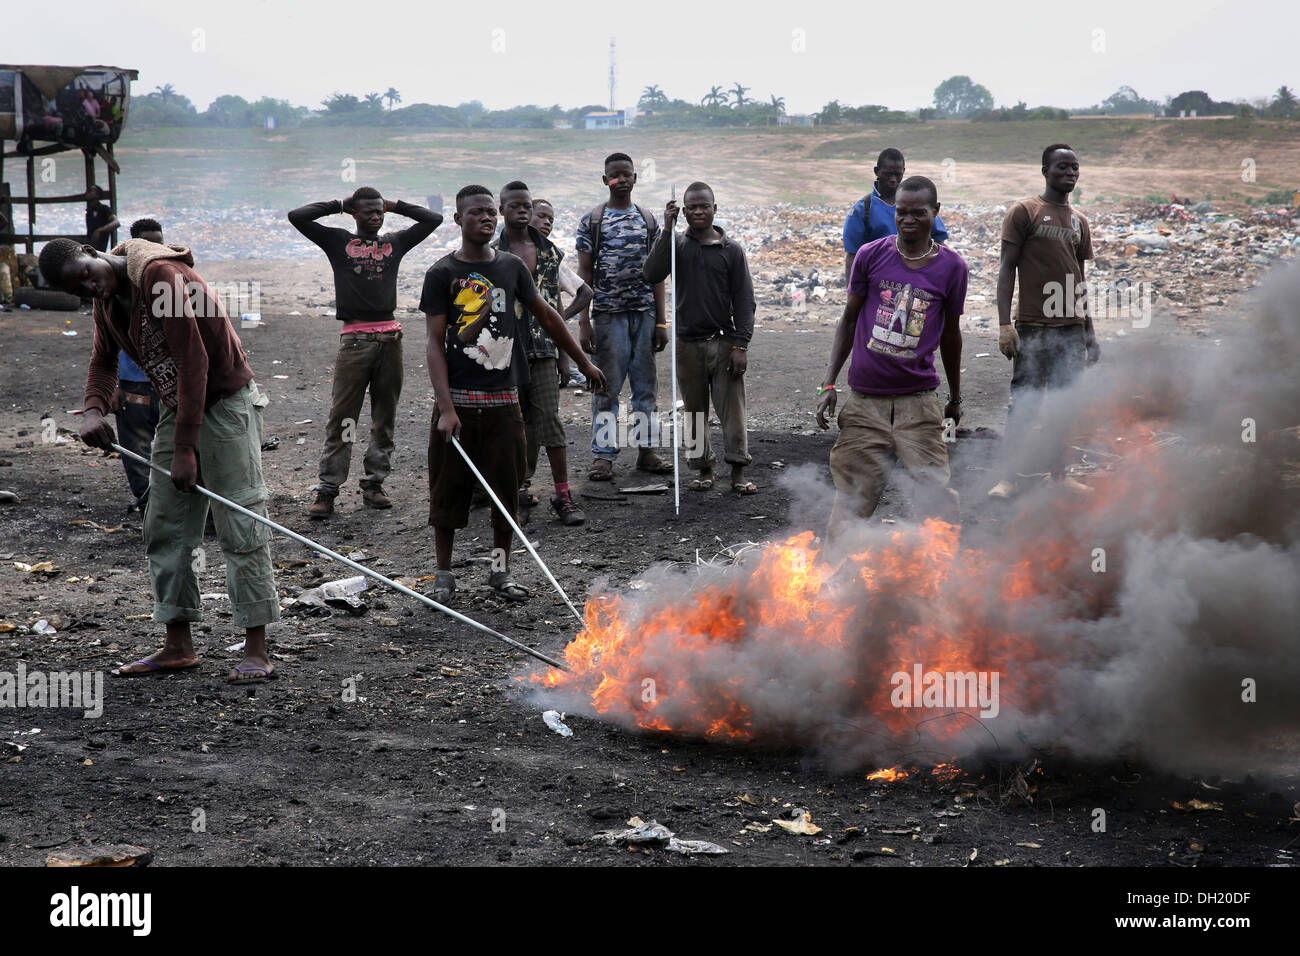 Teenage boys burn cables from computers and other electronics to recover copper near the Agbogbloshie slum in Accra, Ghana - Stock Image